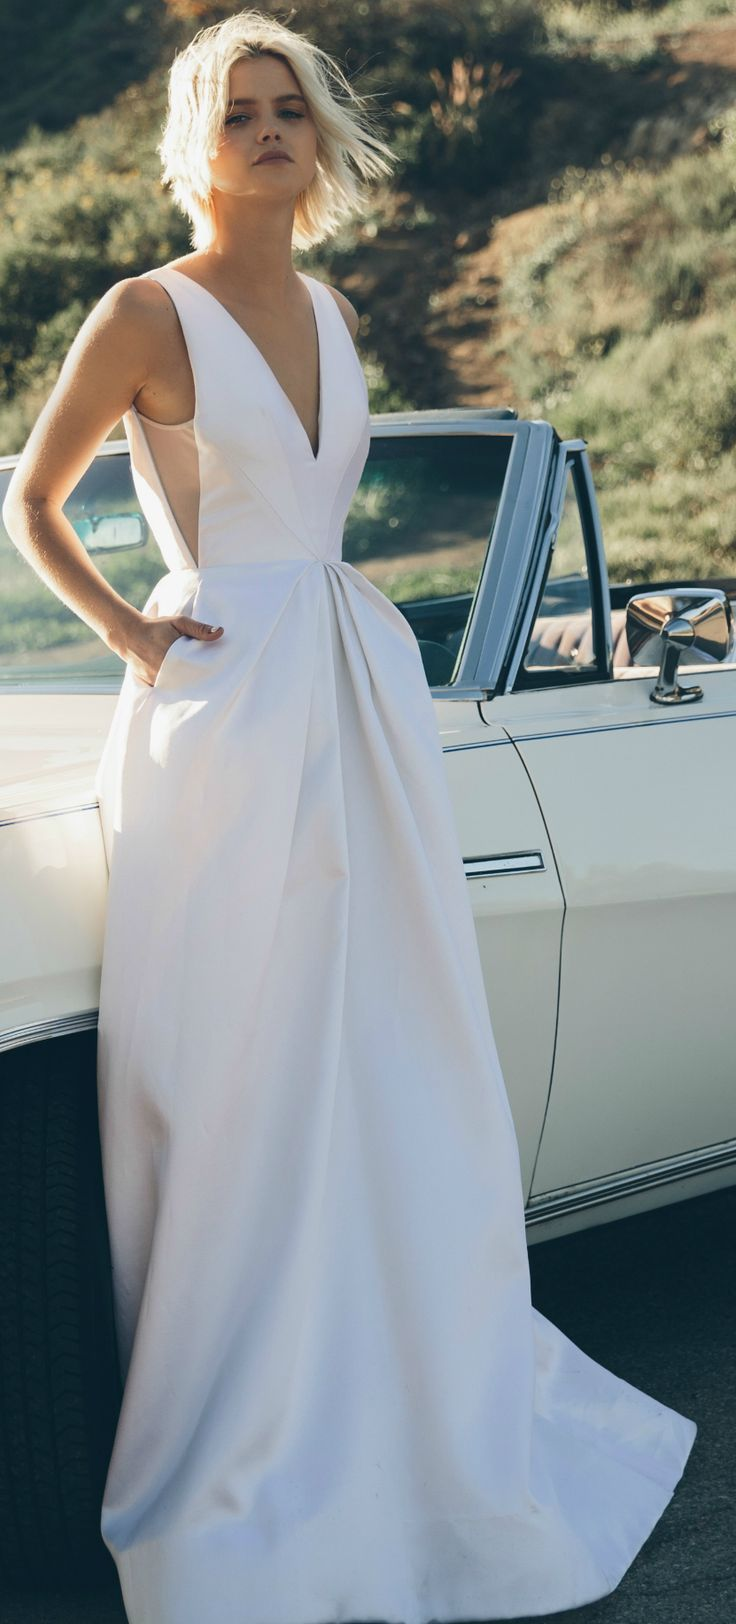 250 best Bridal Gowns images on Pinterest | Wedding bridesmaid ...